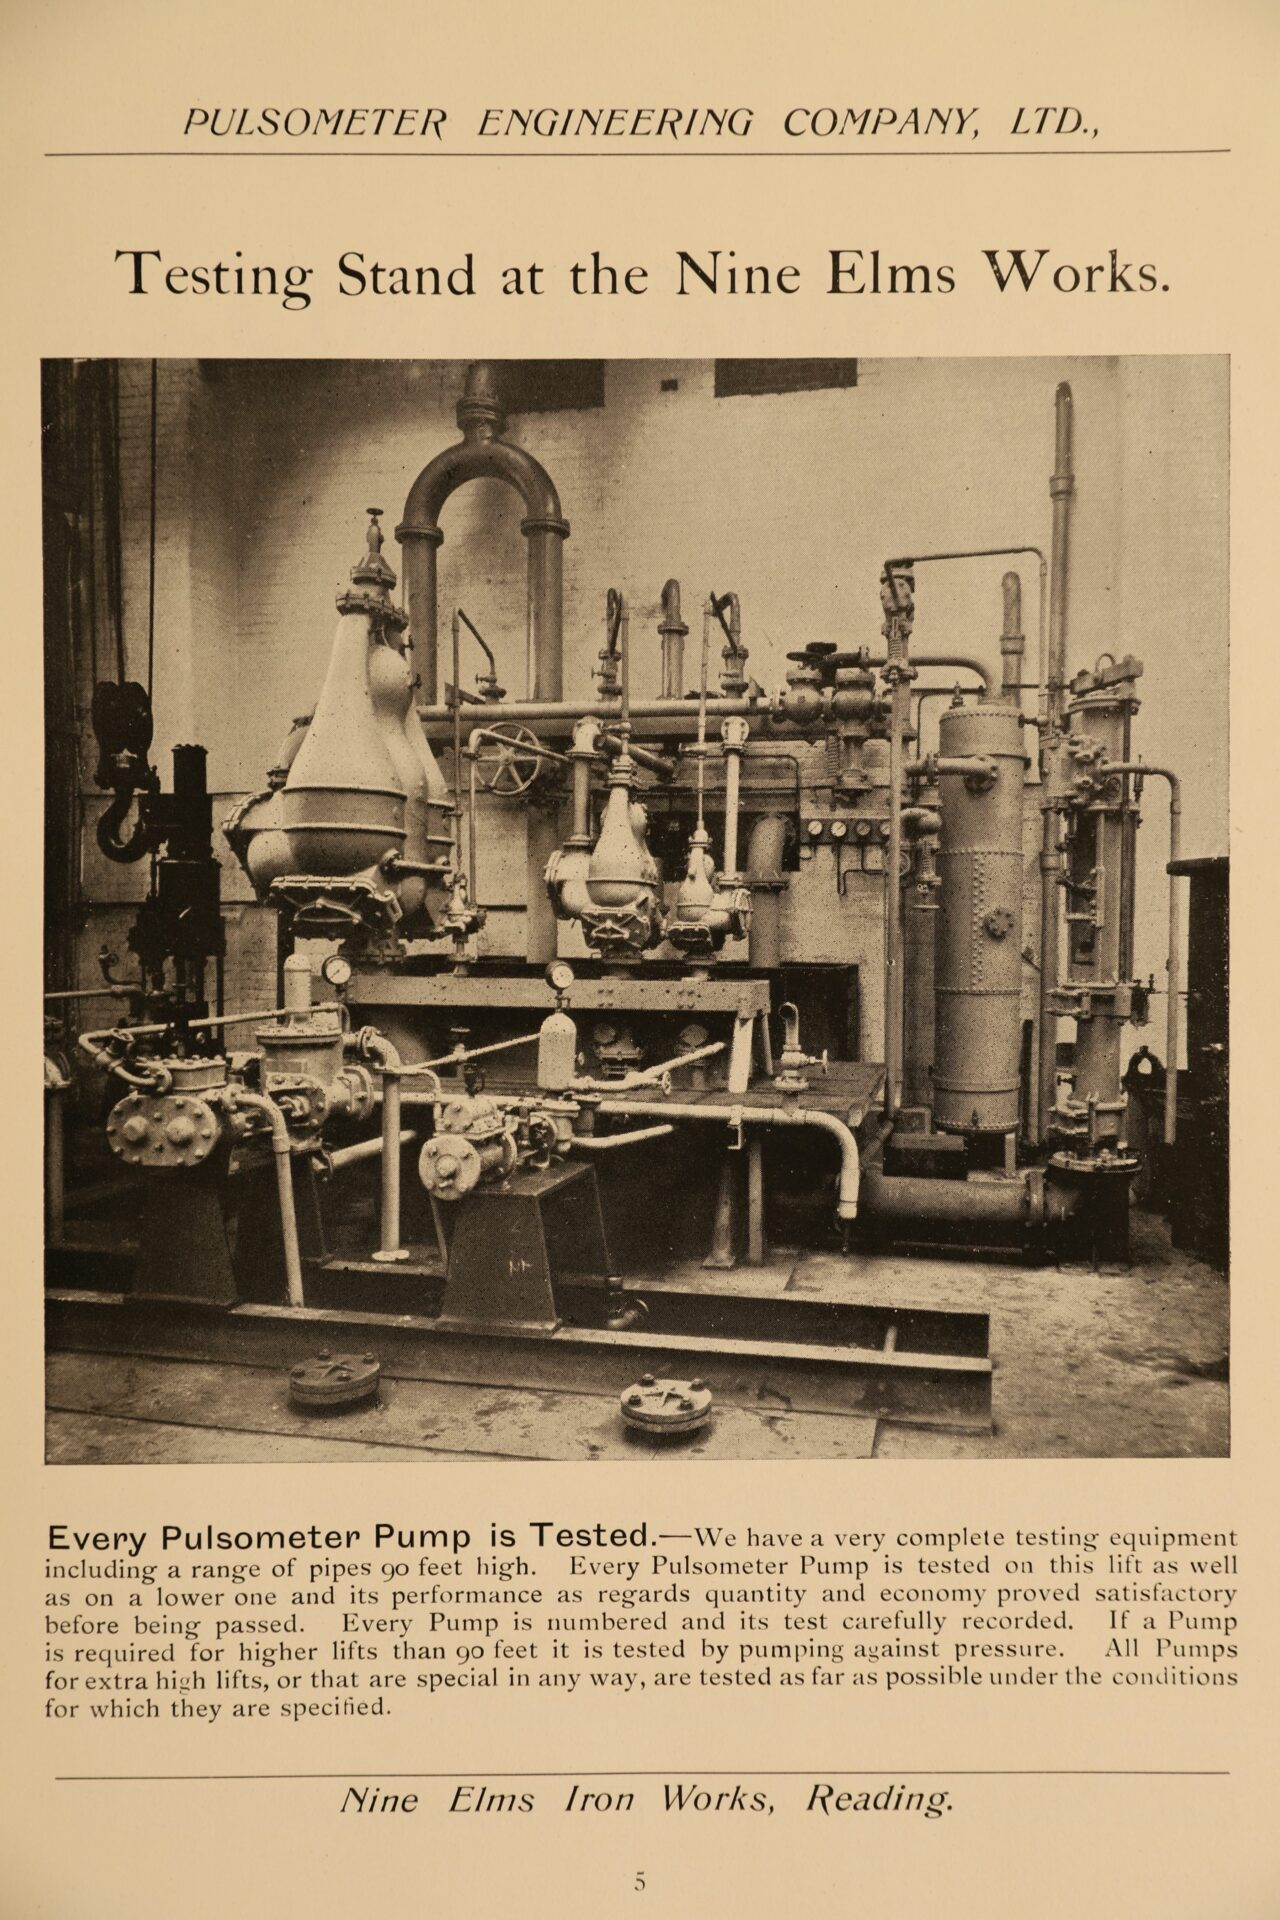 Image of page 5 from Pulsometer Steam Pumps Catalogue 1908 showing testing stand